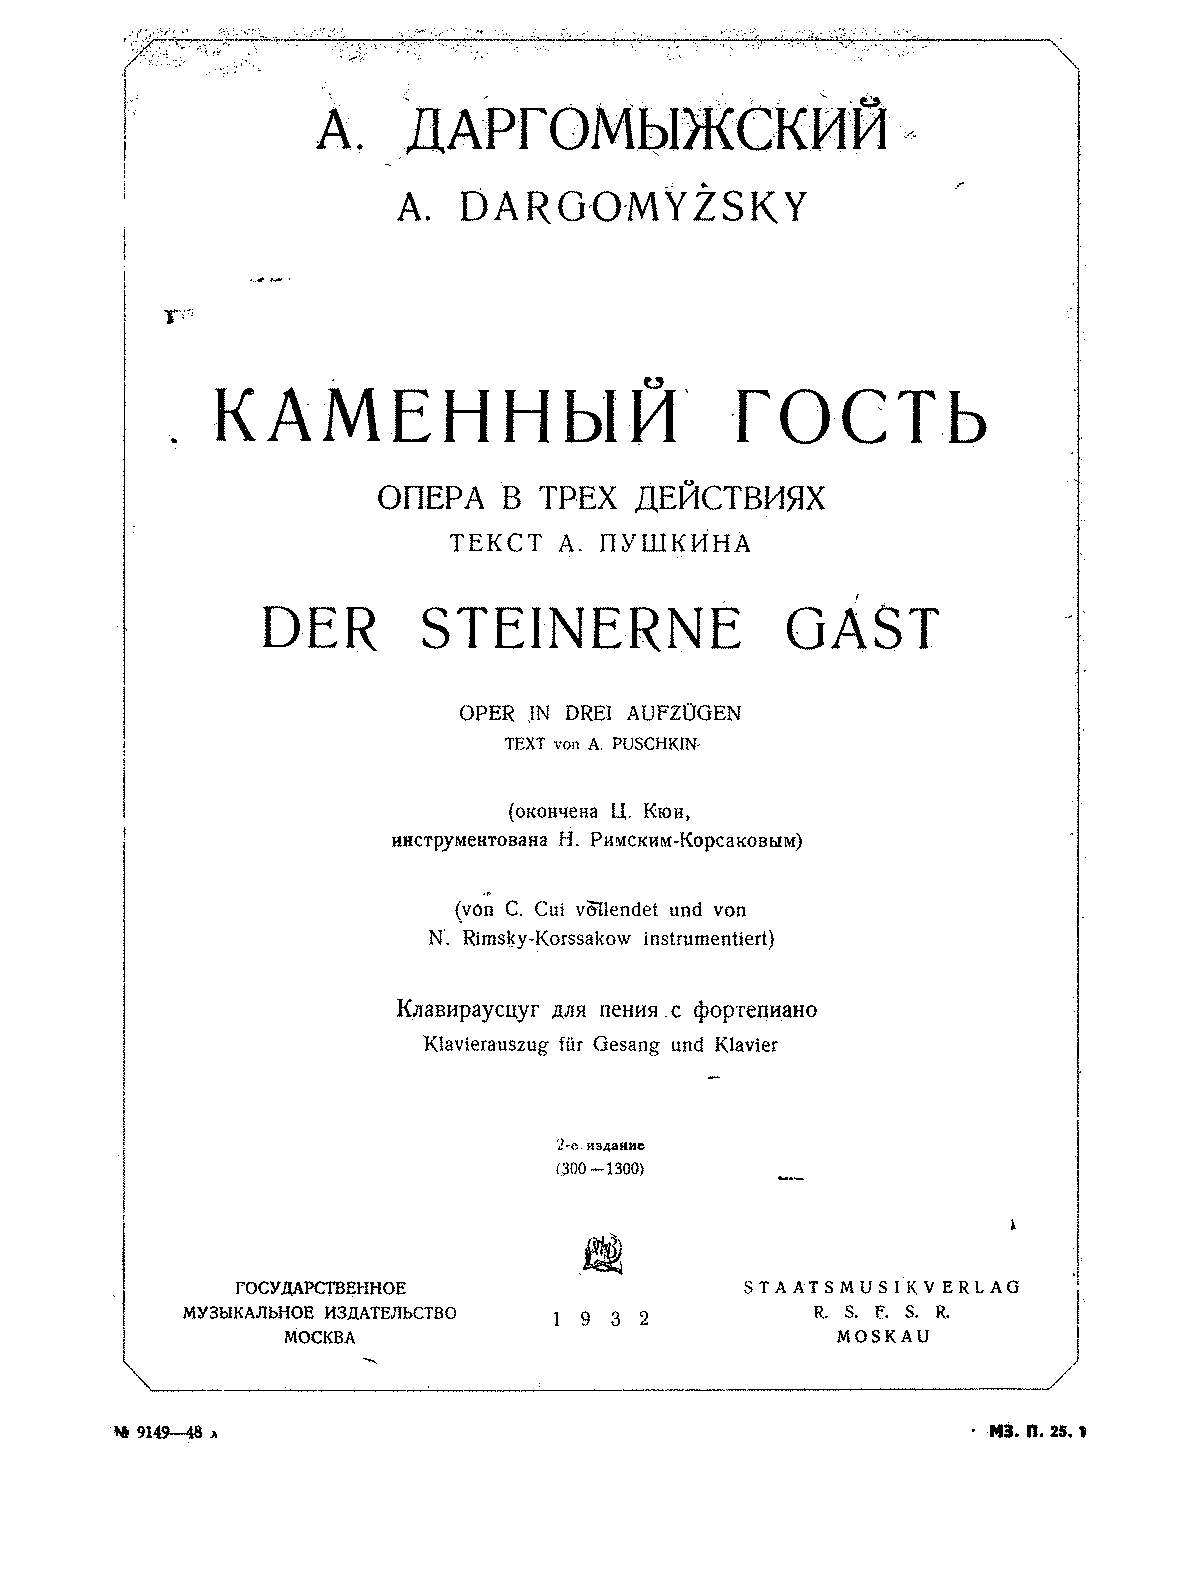 PMLP45306-Dargomyzsky - The Stone Guest (vocal score).pdf